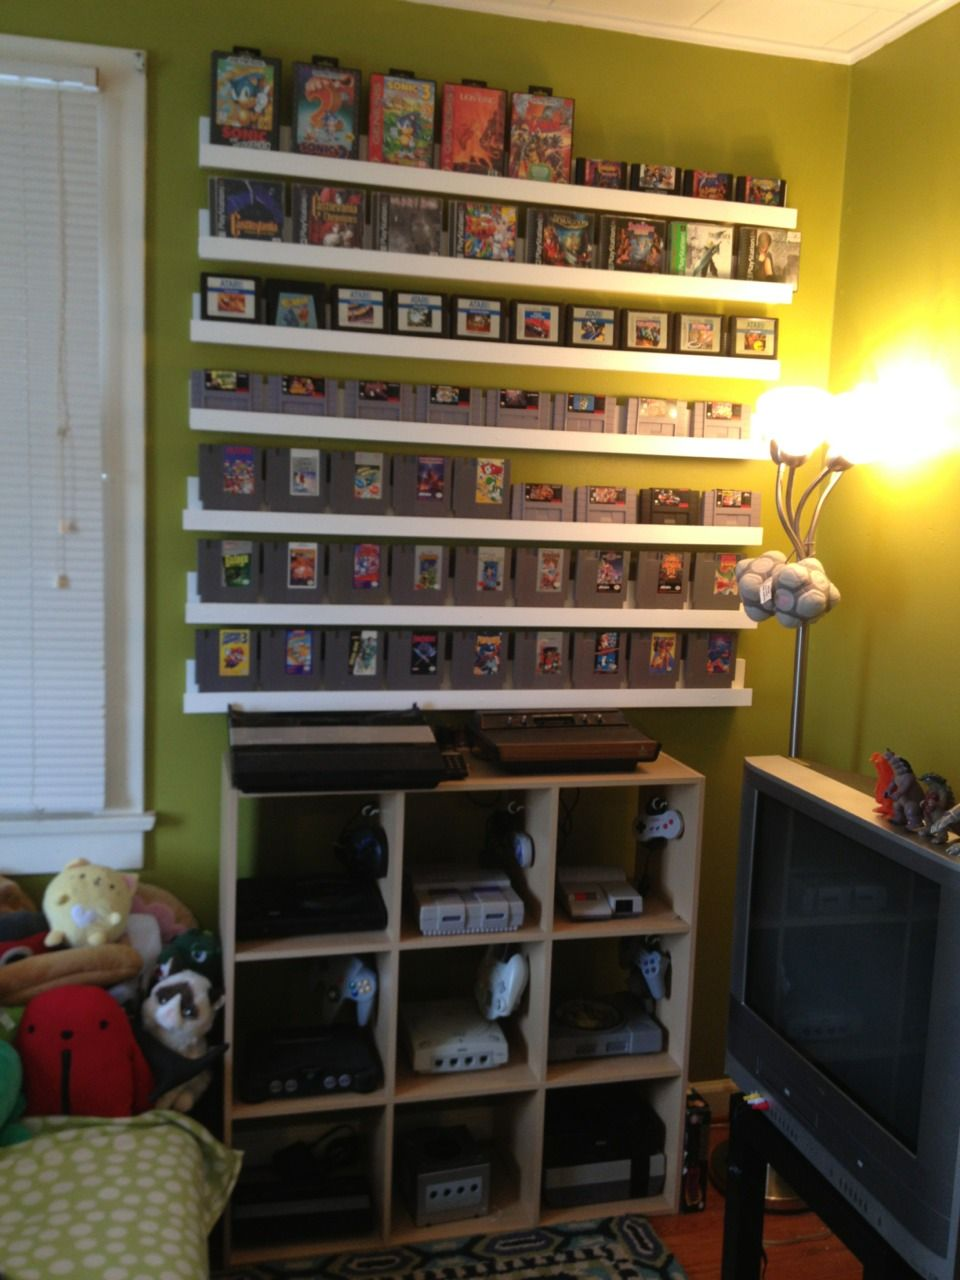 Gamer Builds Room To Display Her Retro Video Game Collection Retro Games Room Video Game Storage Game Room